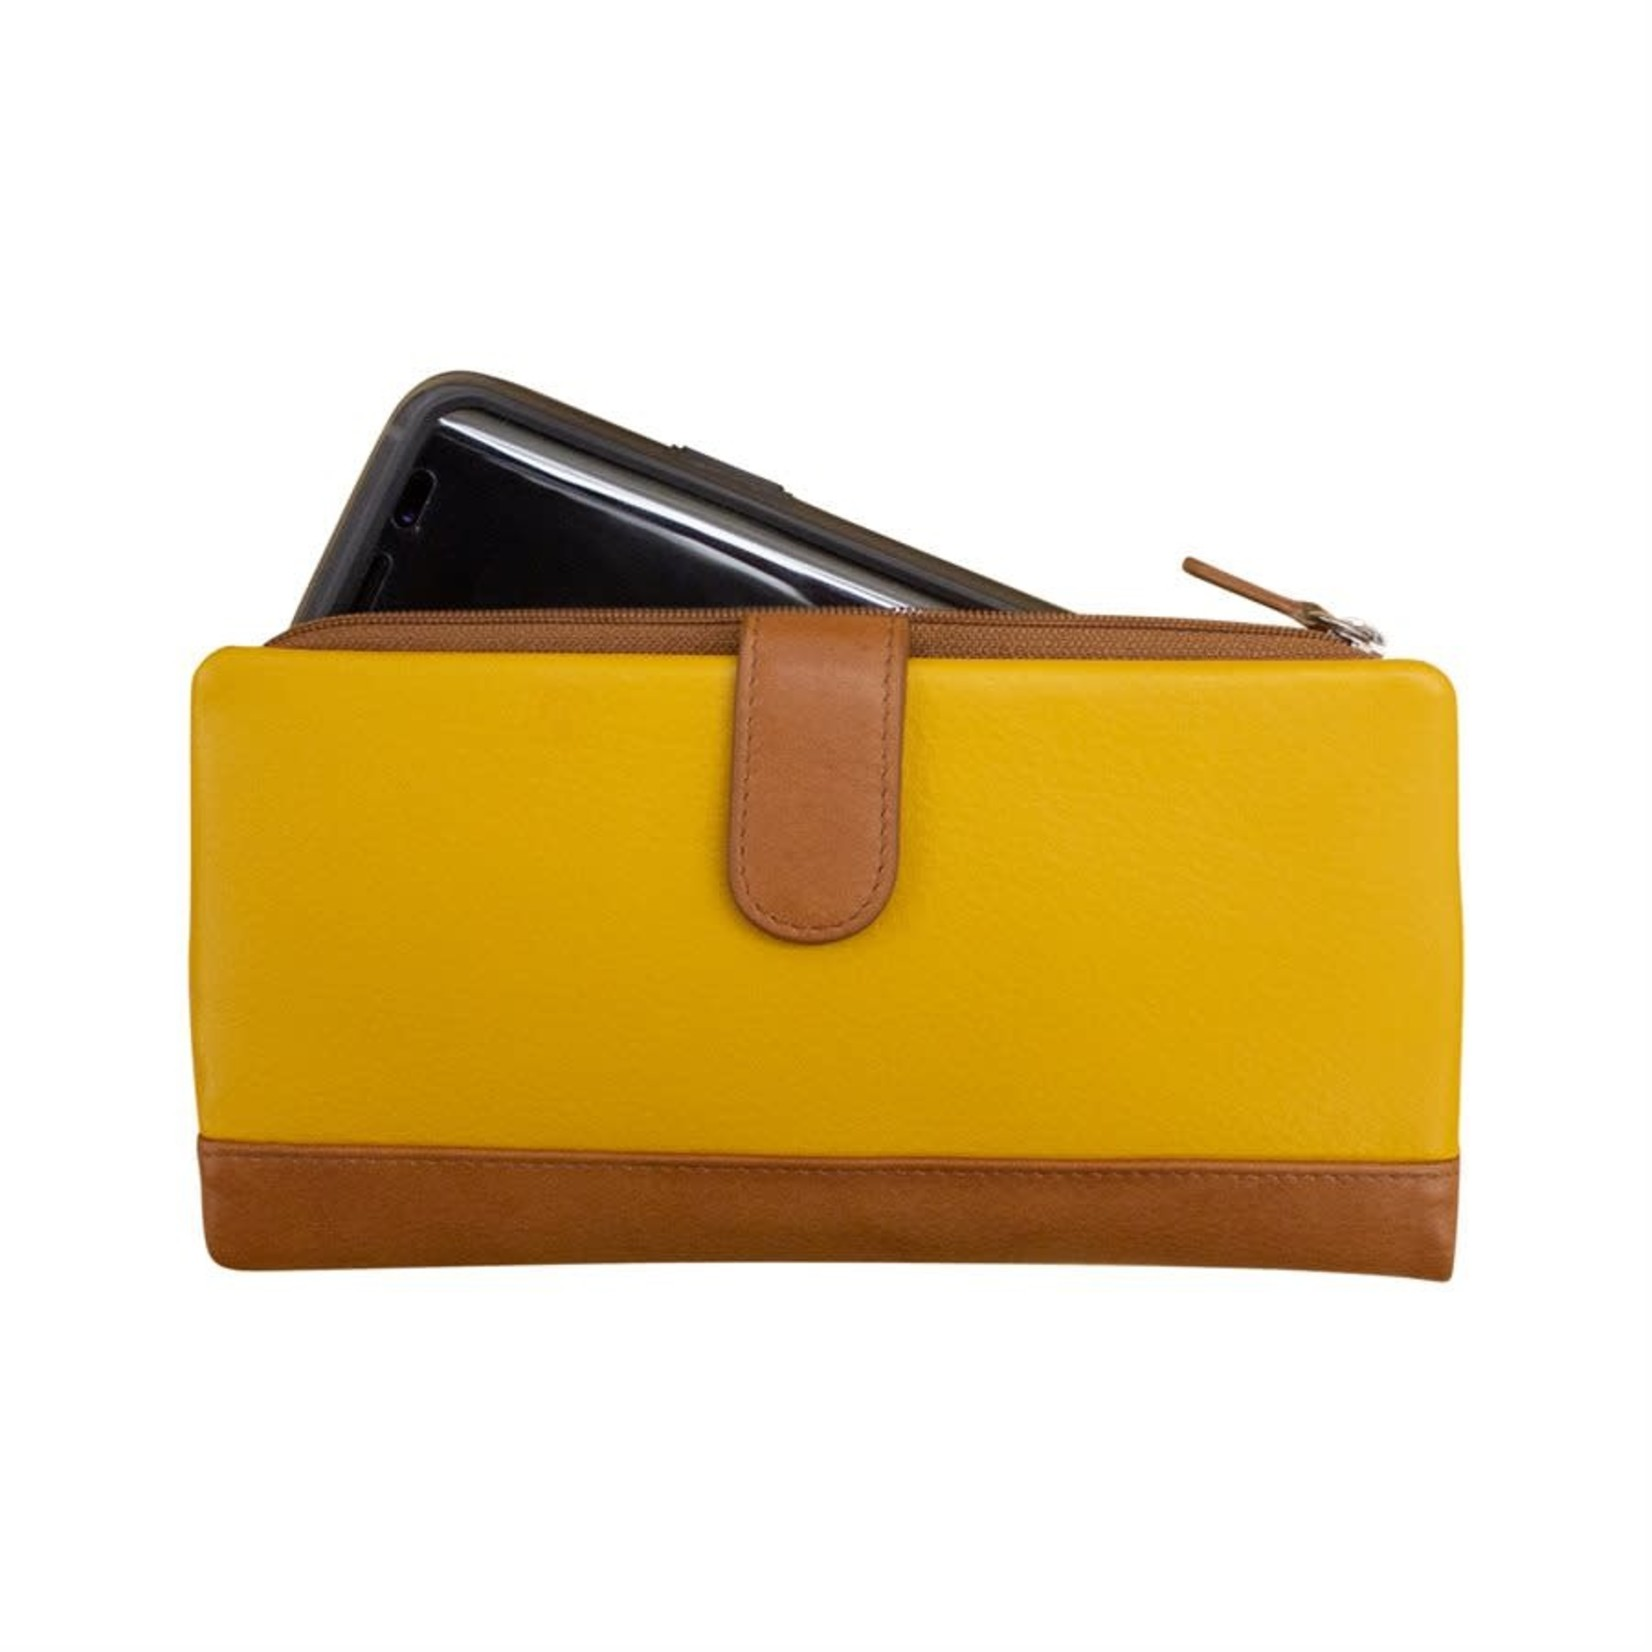 Leather Handbags and Accessories 7420 Yellowstone - RFID Smartphone Wallet